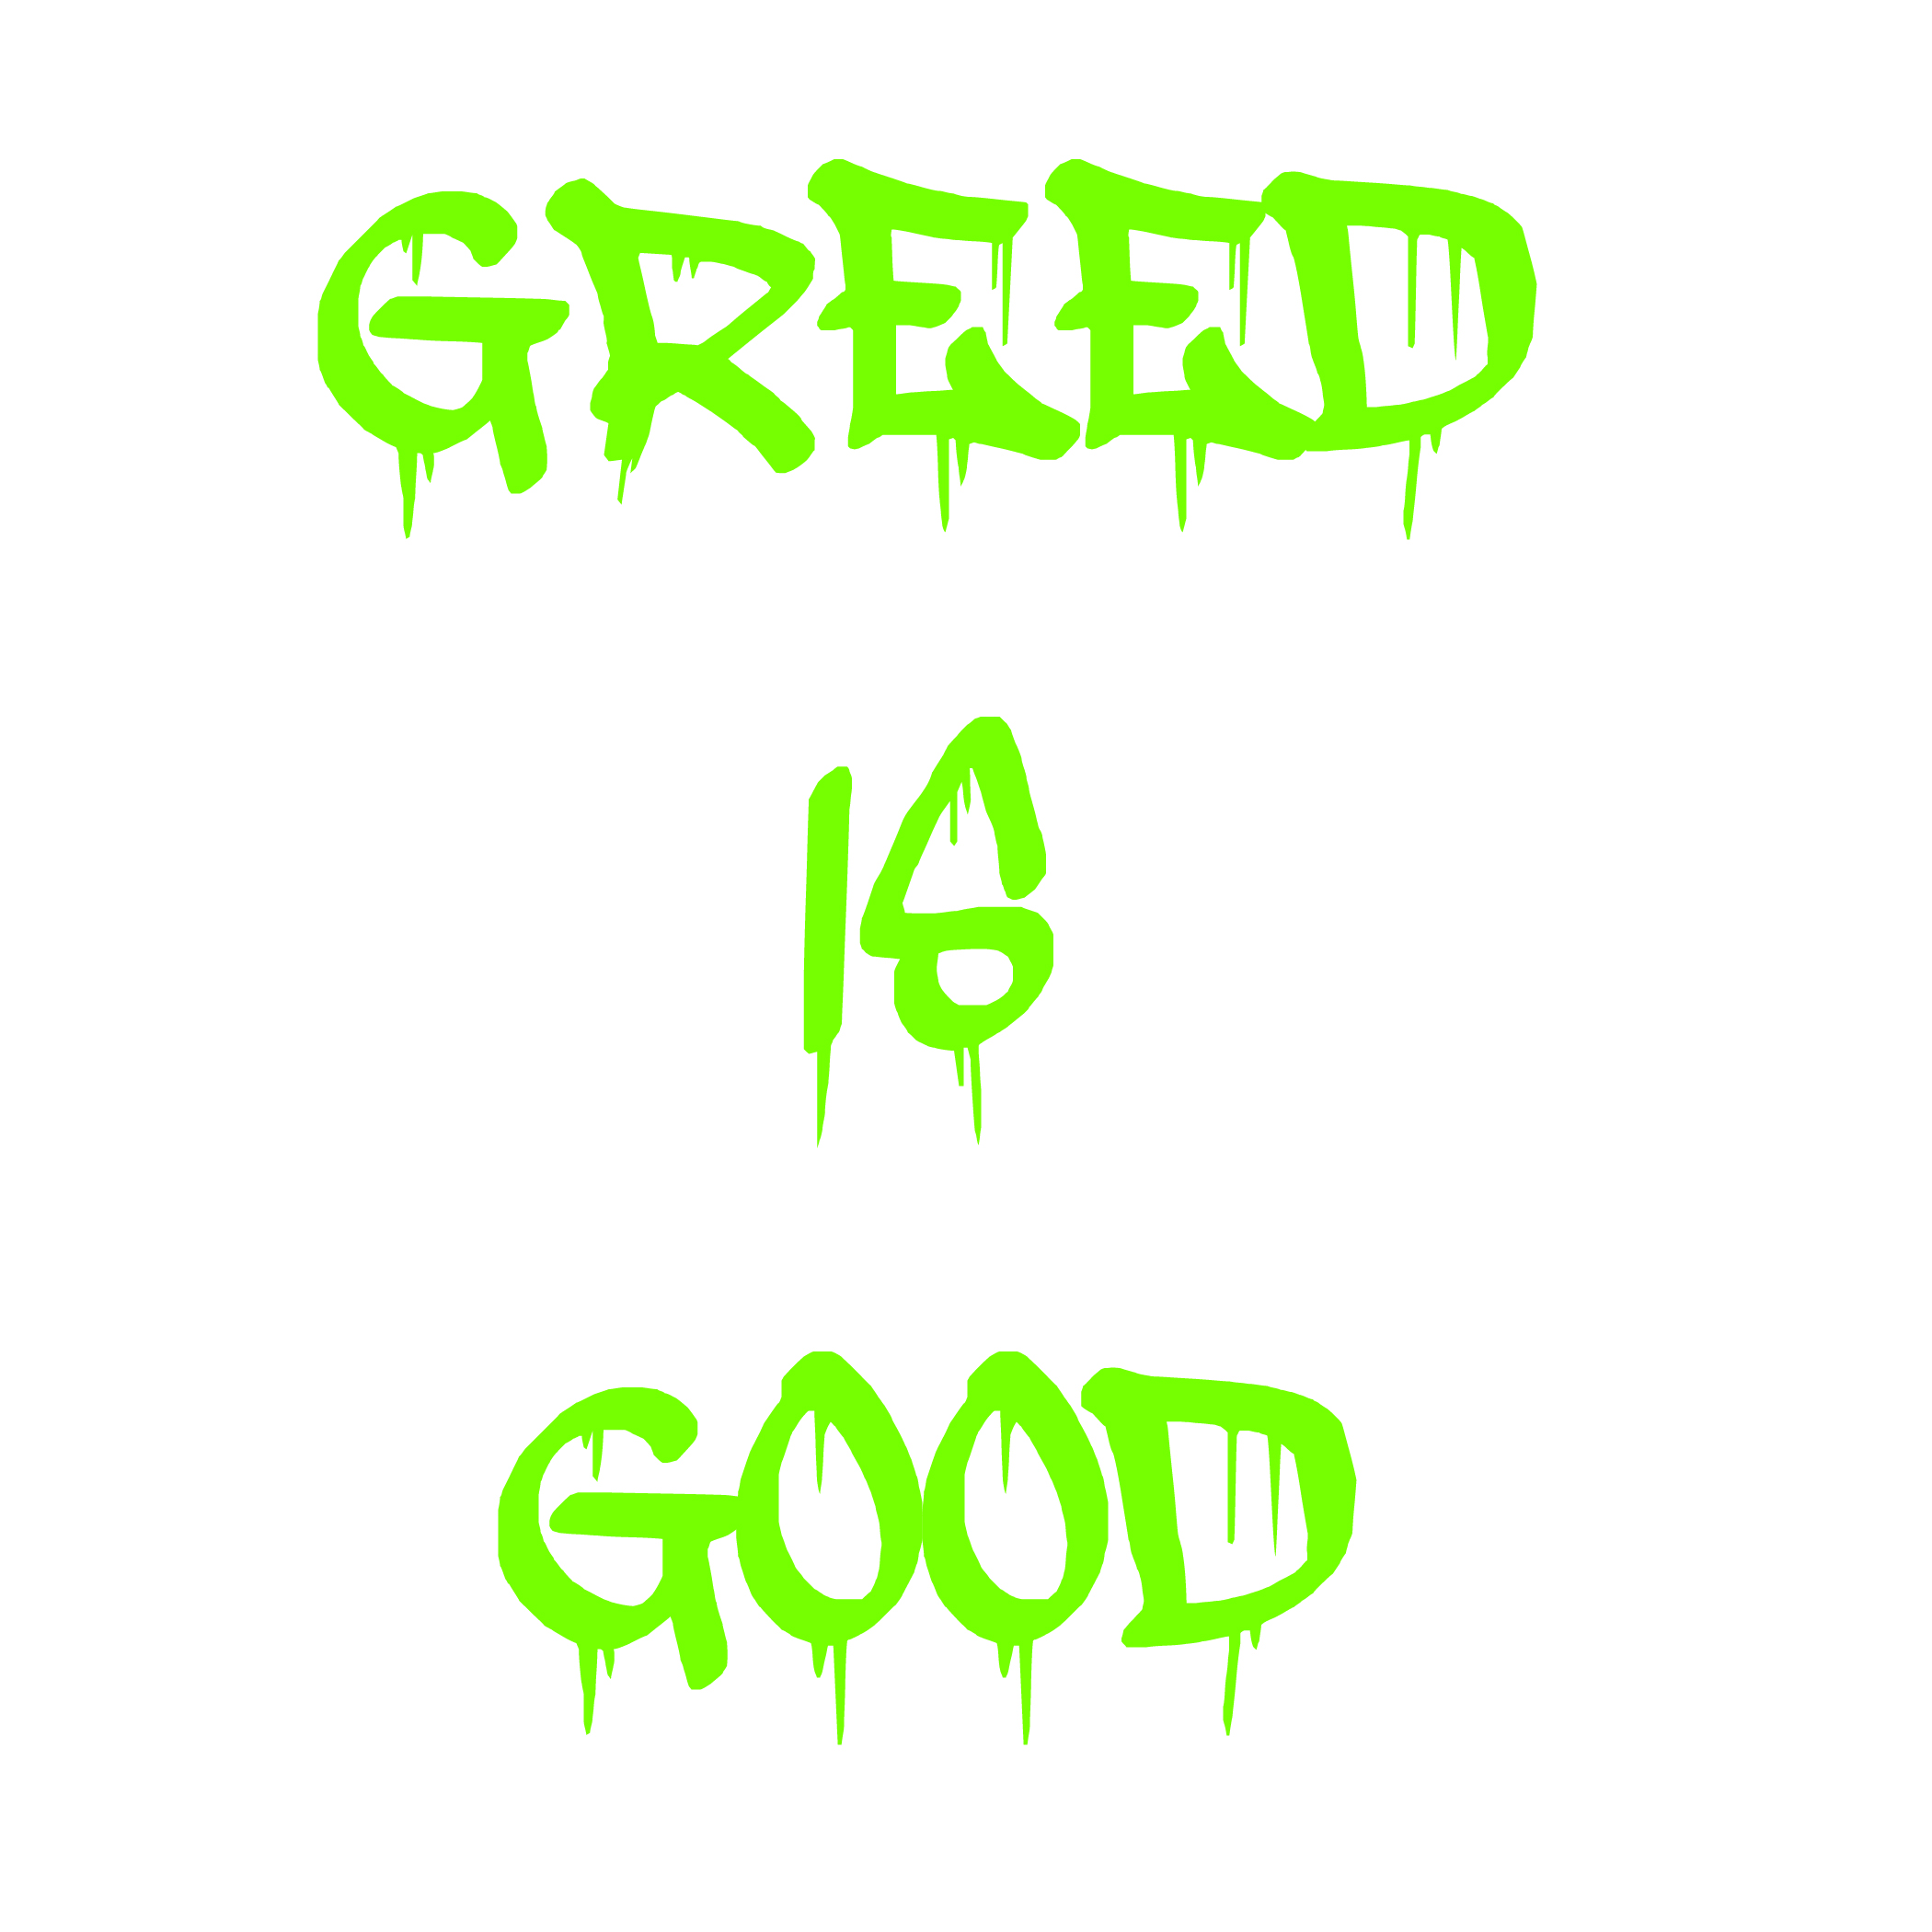 greed good Greed (or avarice, cupidity, or covetousness) is the excessive desire for more than is needed or deserved, not for the greater good but for one's own selfish interest, and at the detriment.